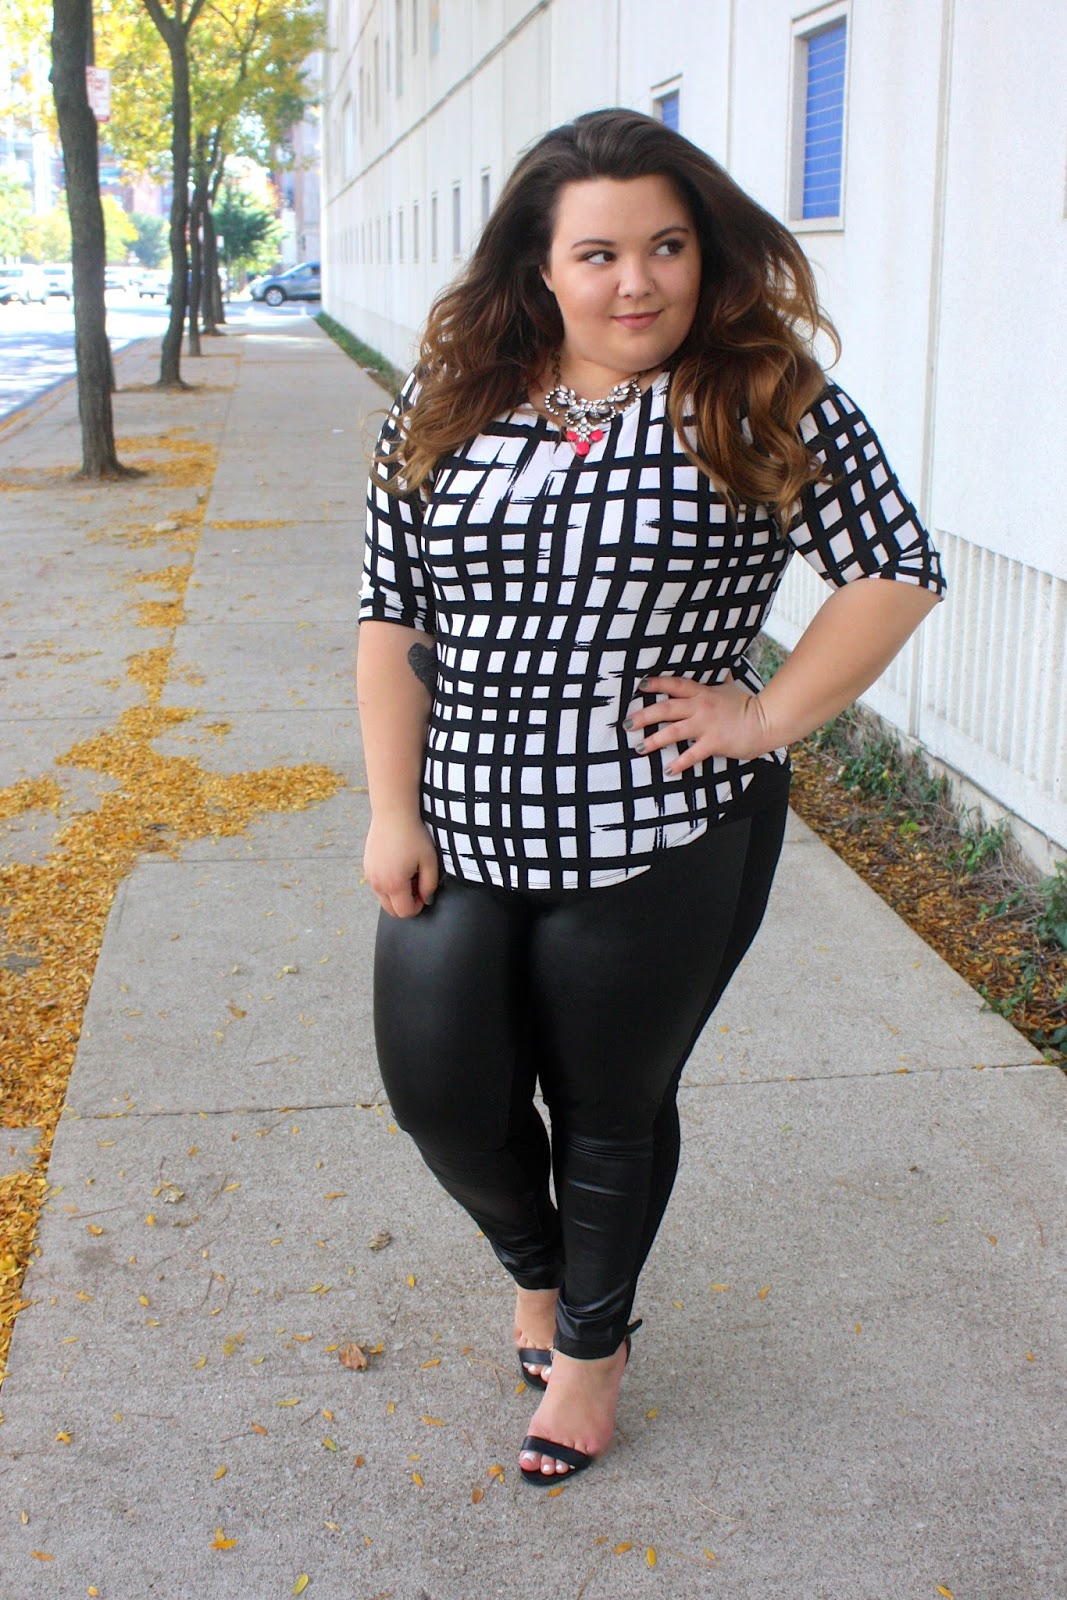 natalie craig, natalie in the city, fashion blogger, chicago, plus size fashion blogger, leather leggings, ootd, fatshion, business casual, brush strokes, what to wear with statement jewelry, plus size leather leggings, leggings, fall fashion